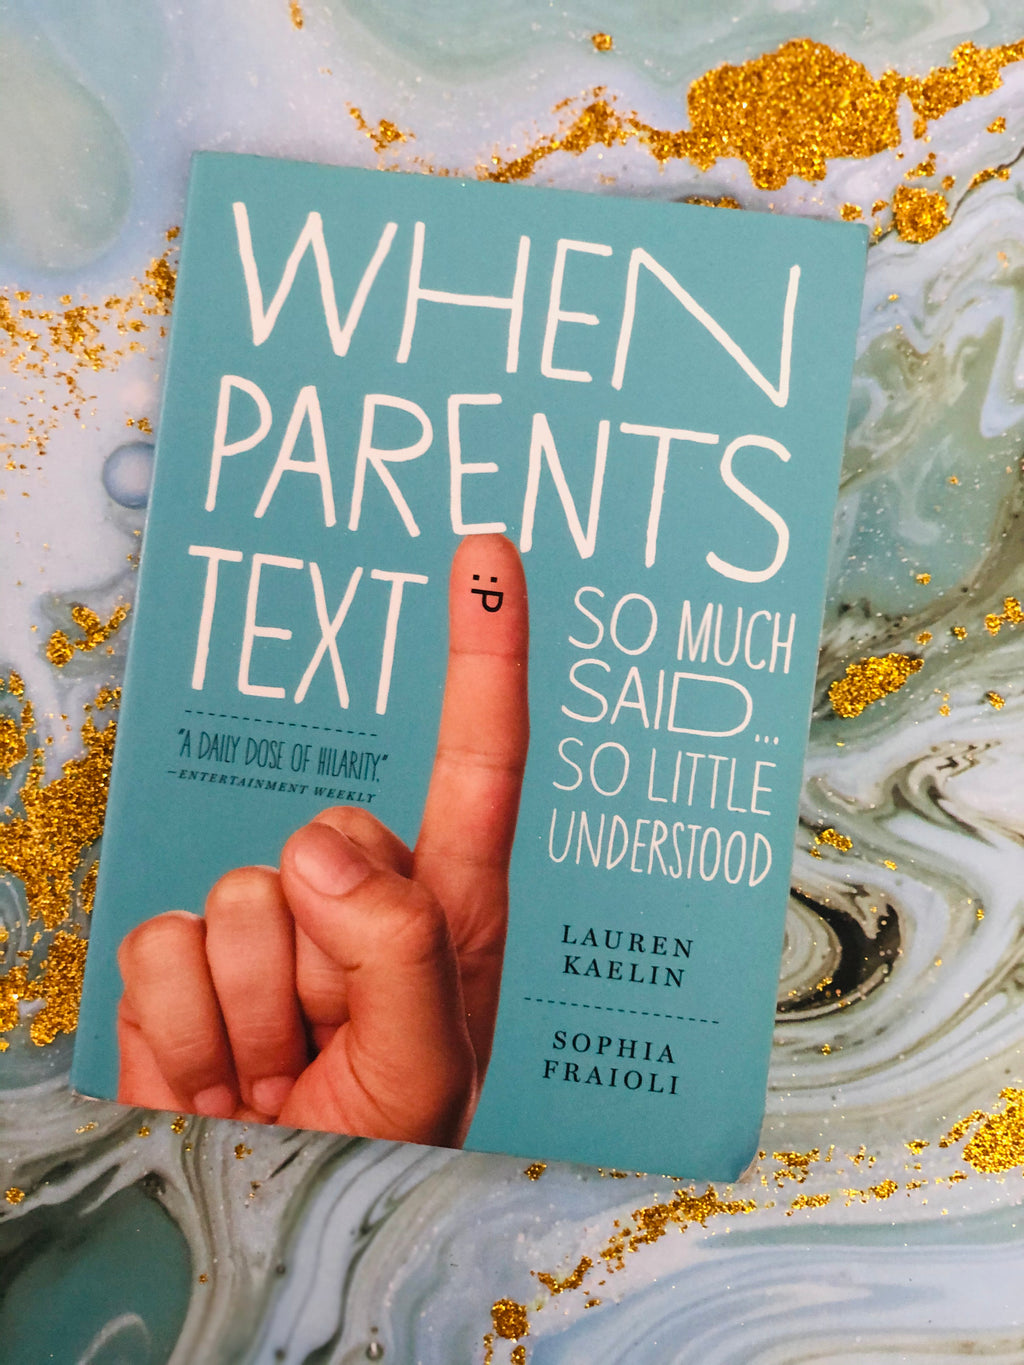 When Parents Text by Lauren Kaelin & Sophia Fraioli